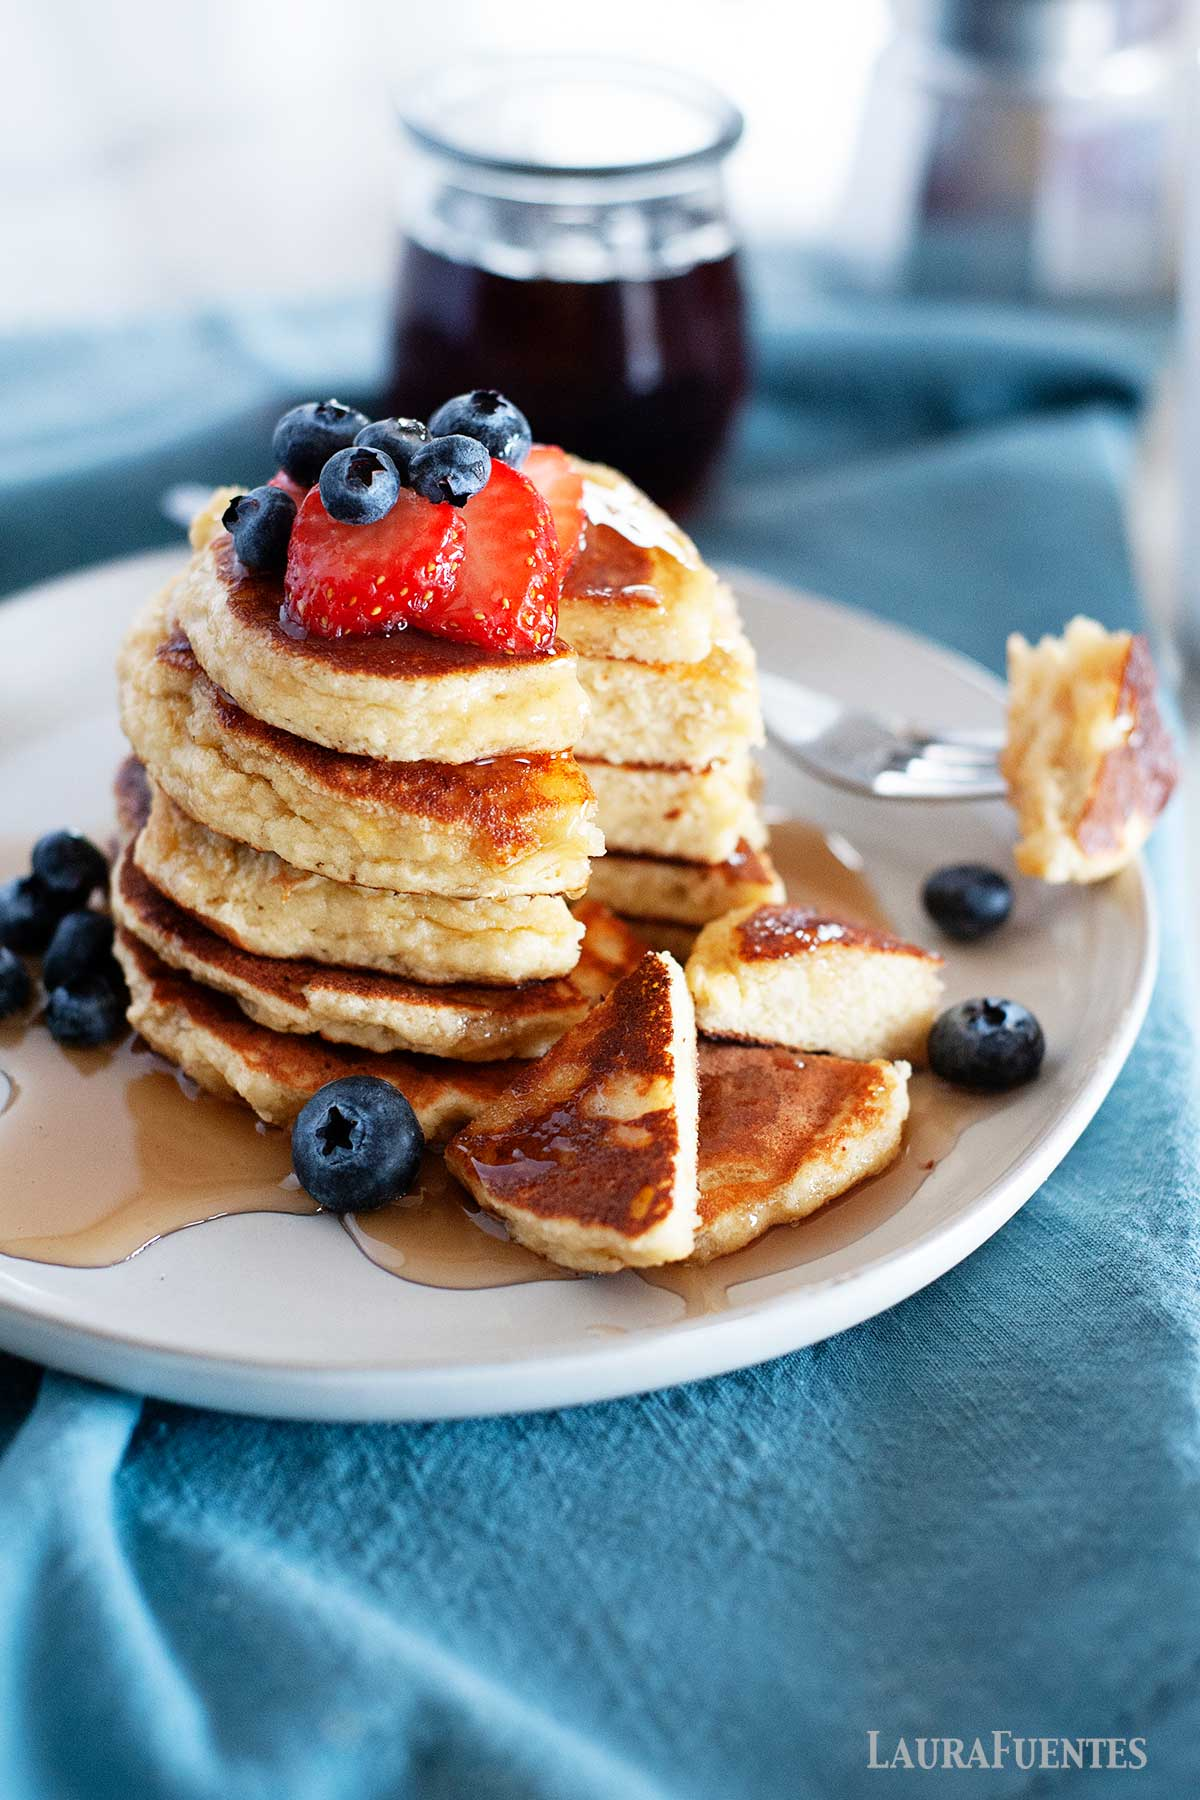 large stack of almond flour pancakes topped with fruit and with a bottle of syrup in the background